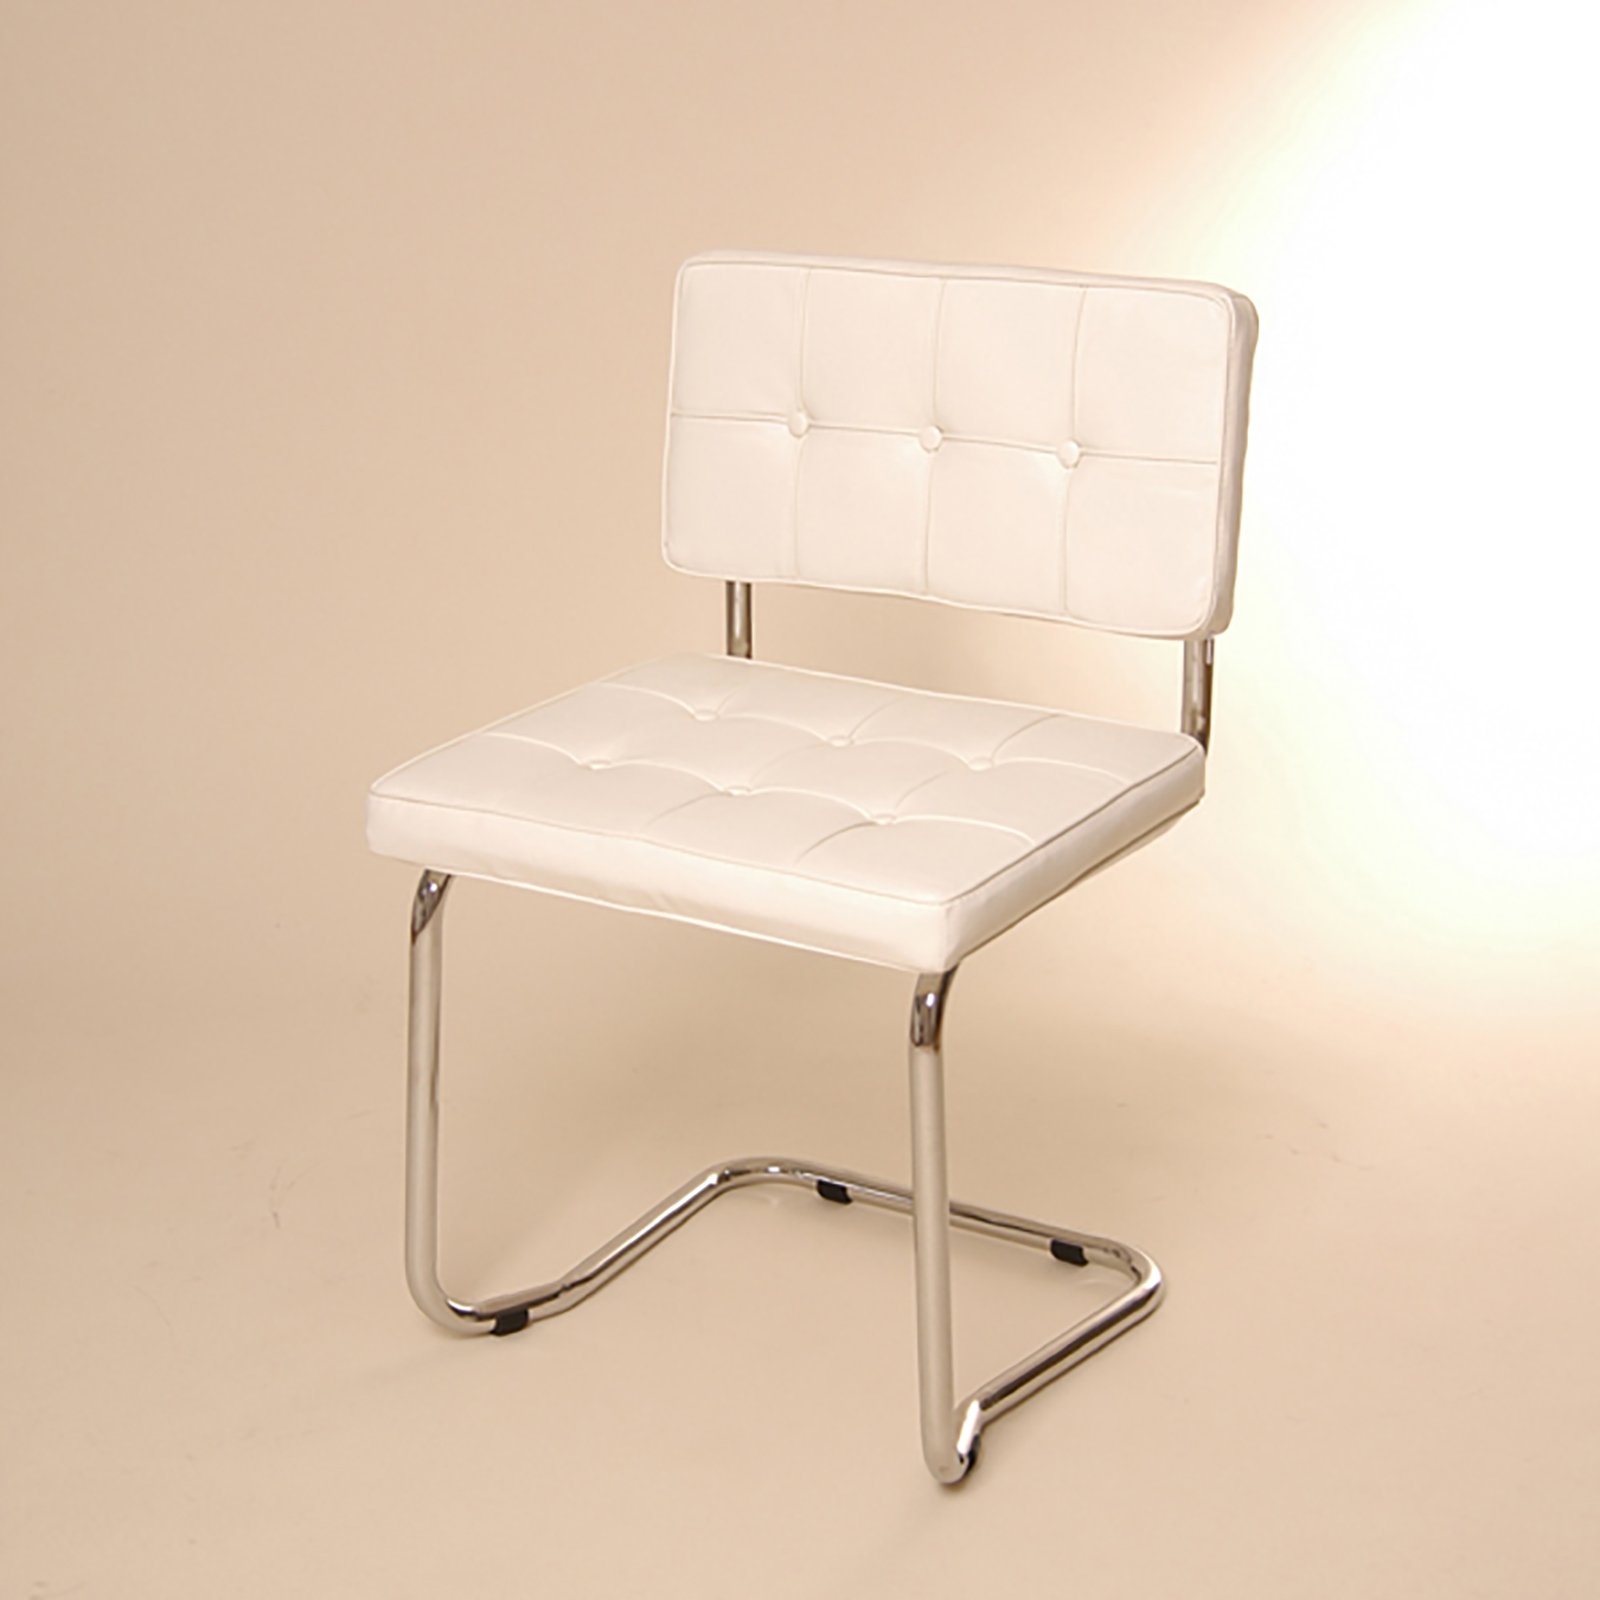 Design cantilever chair white faux leather dining for Chair design leather